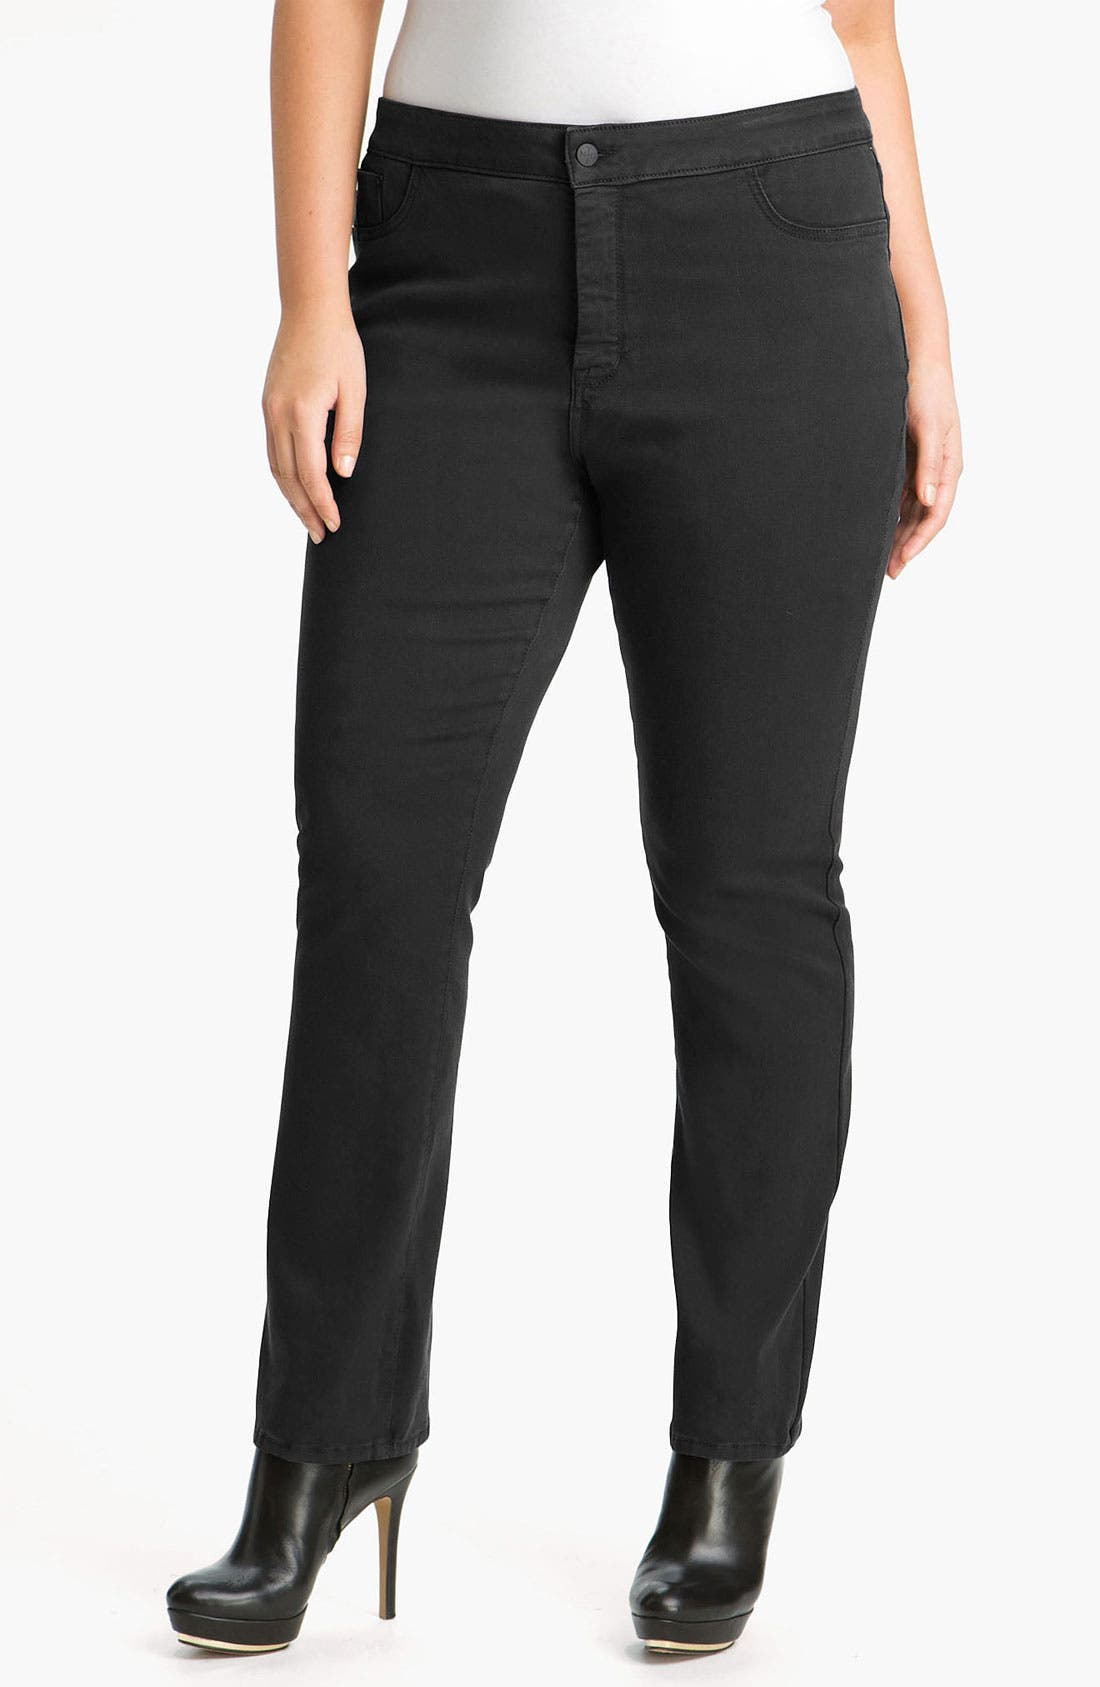 Alternate Image 1 Selected - NYDJ 'Jaclyn' Stretch Skinny Jeans (Plus)